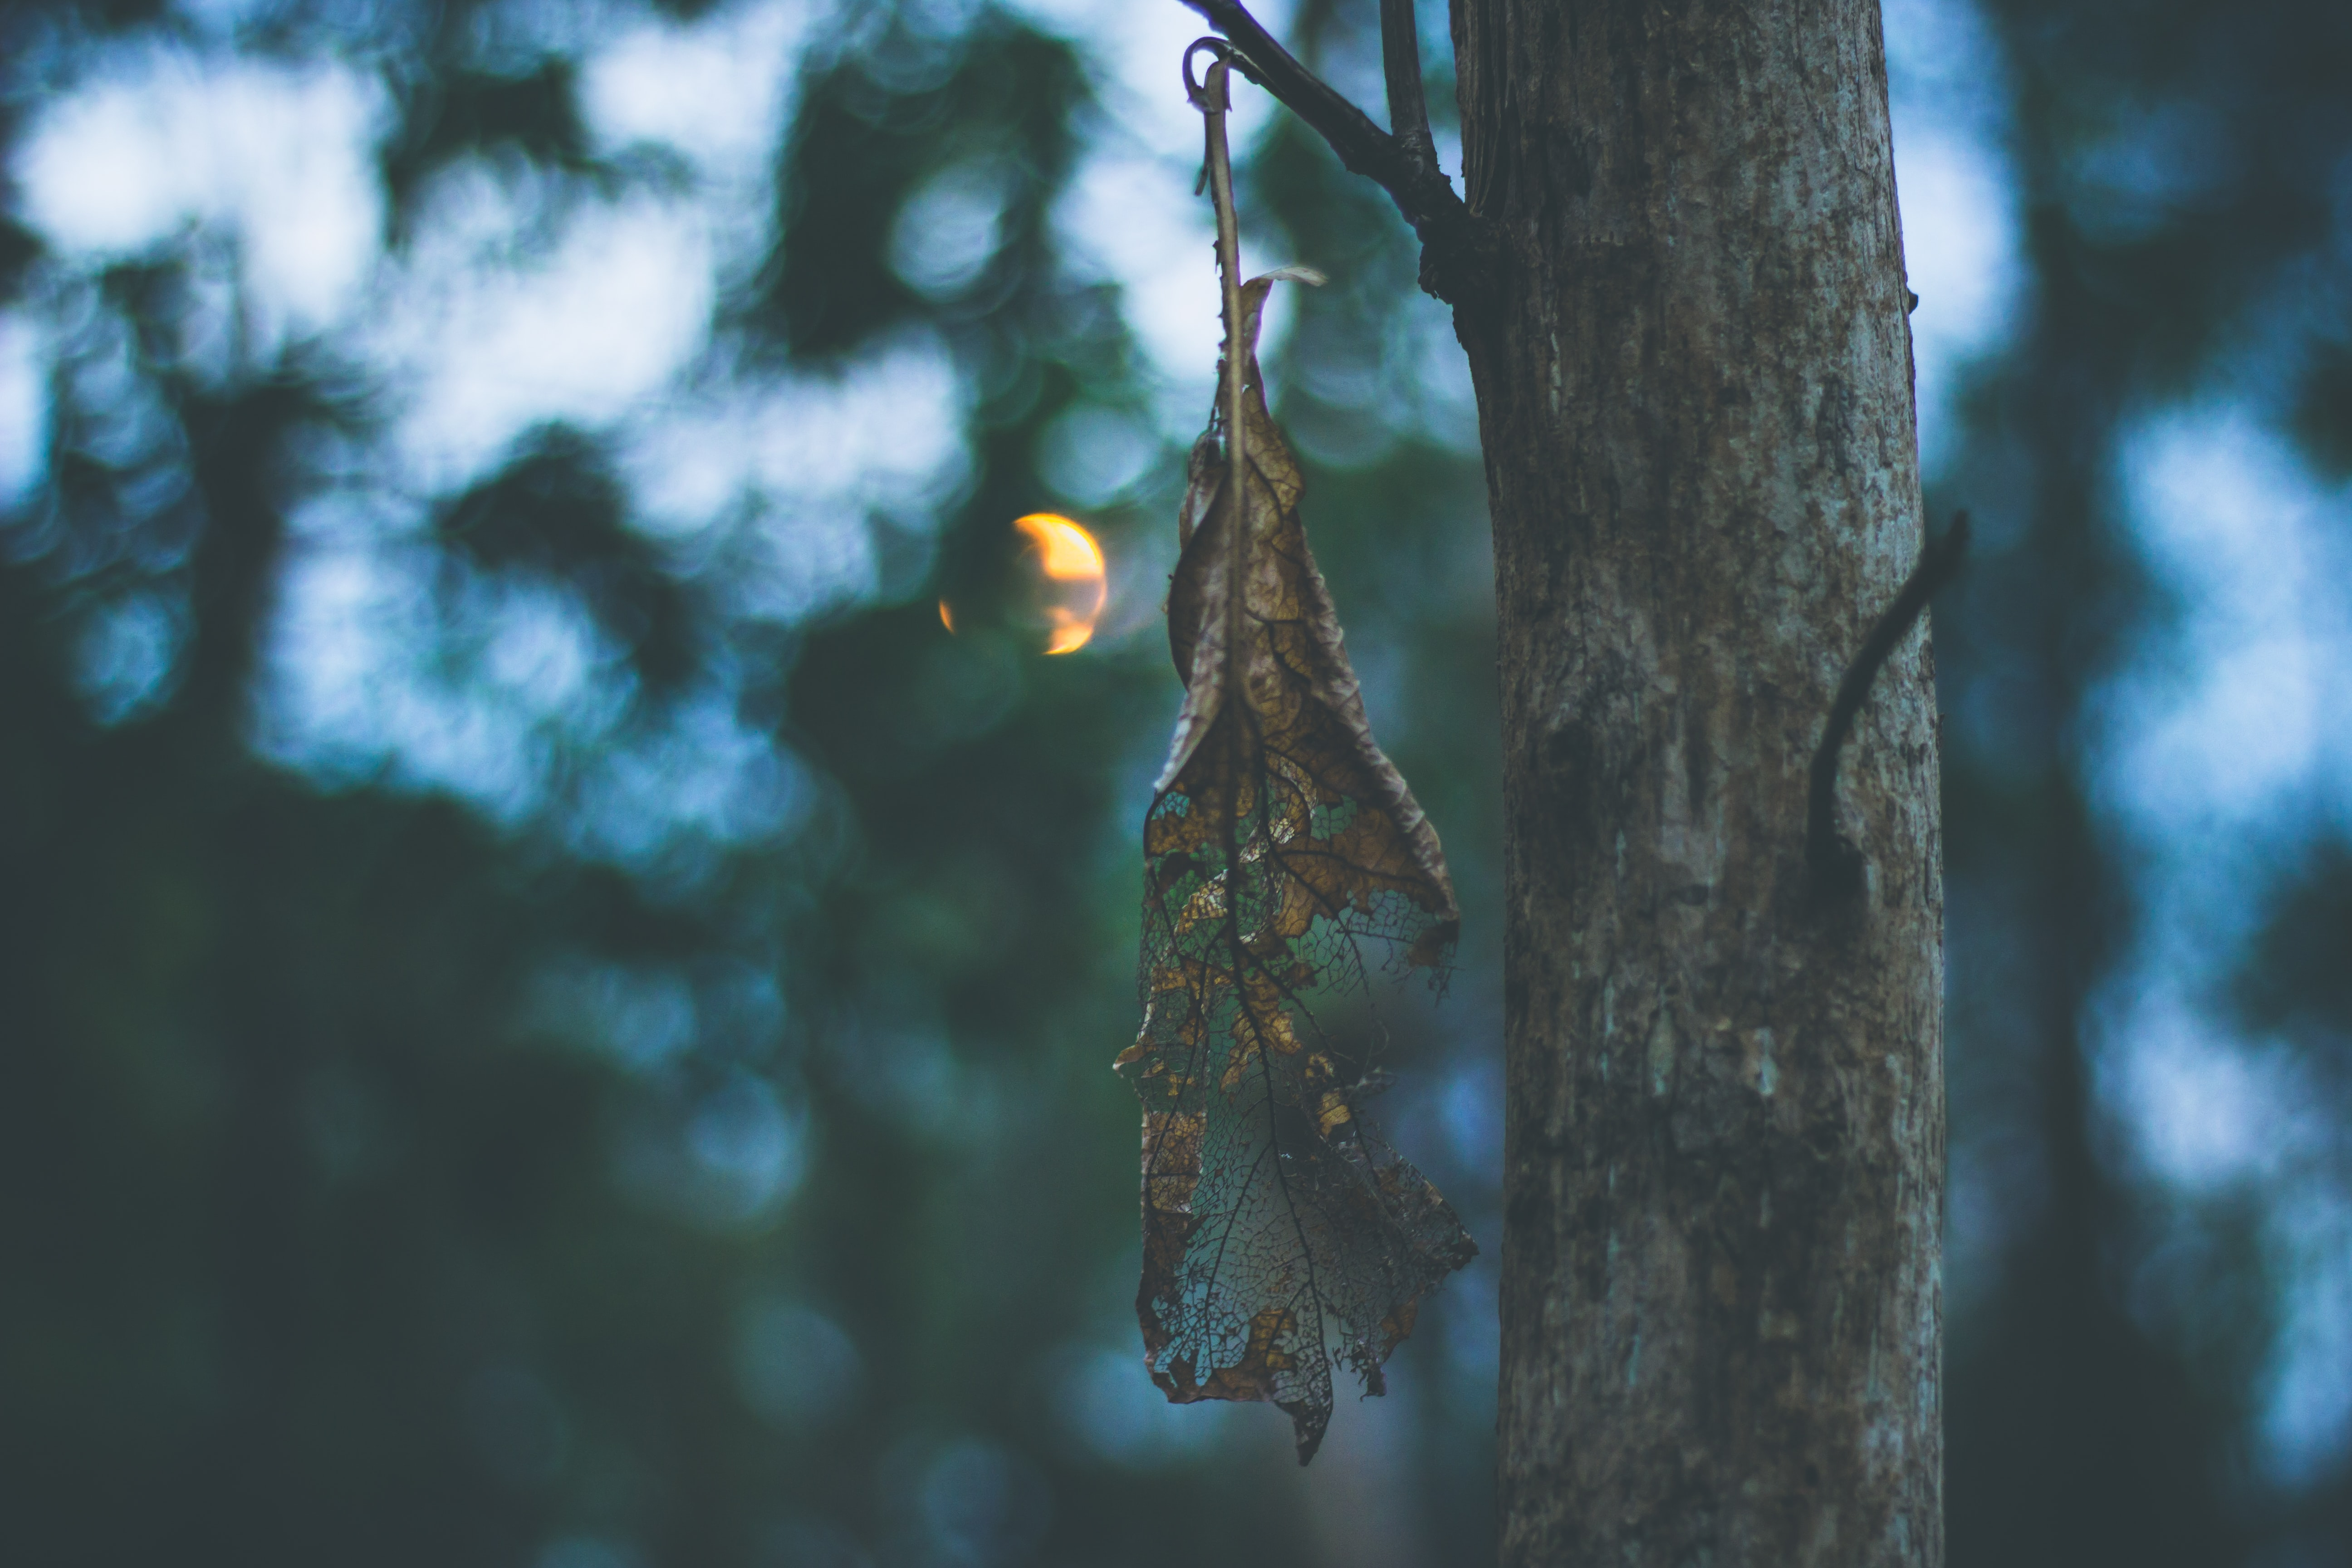 A wilting leaf hanging down from a tree branch during sunset